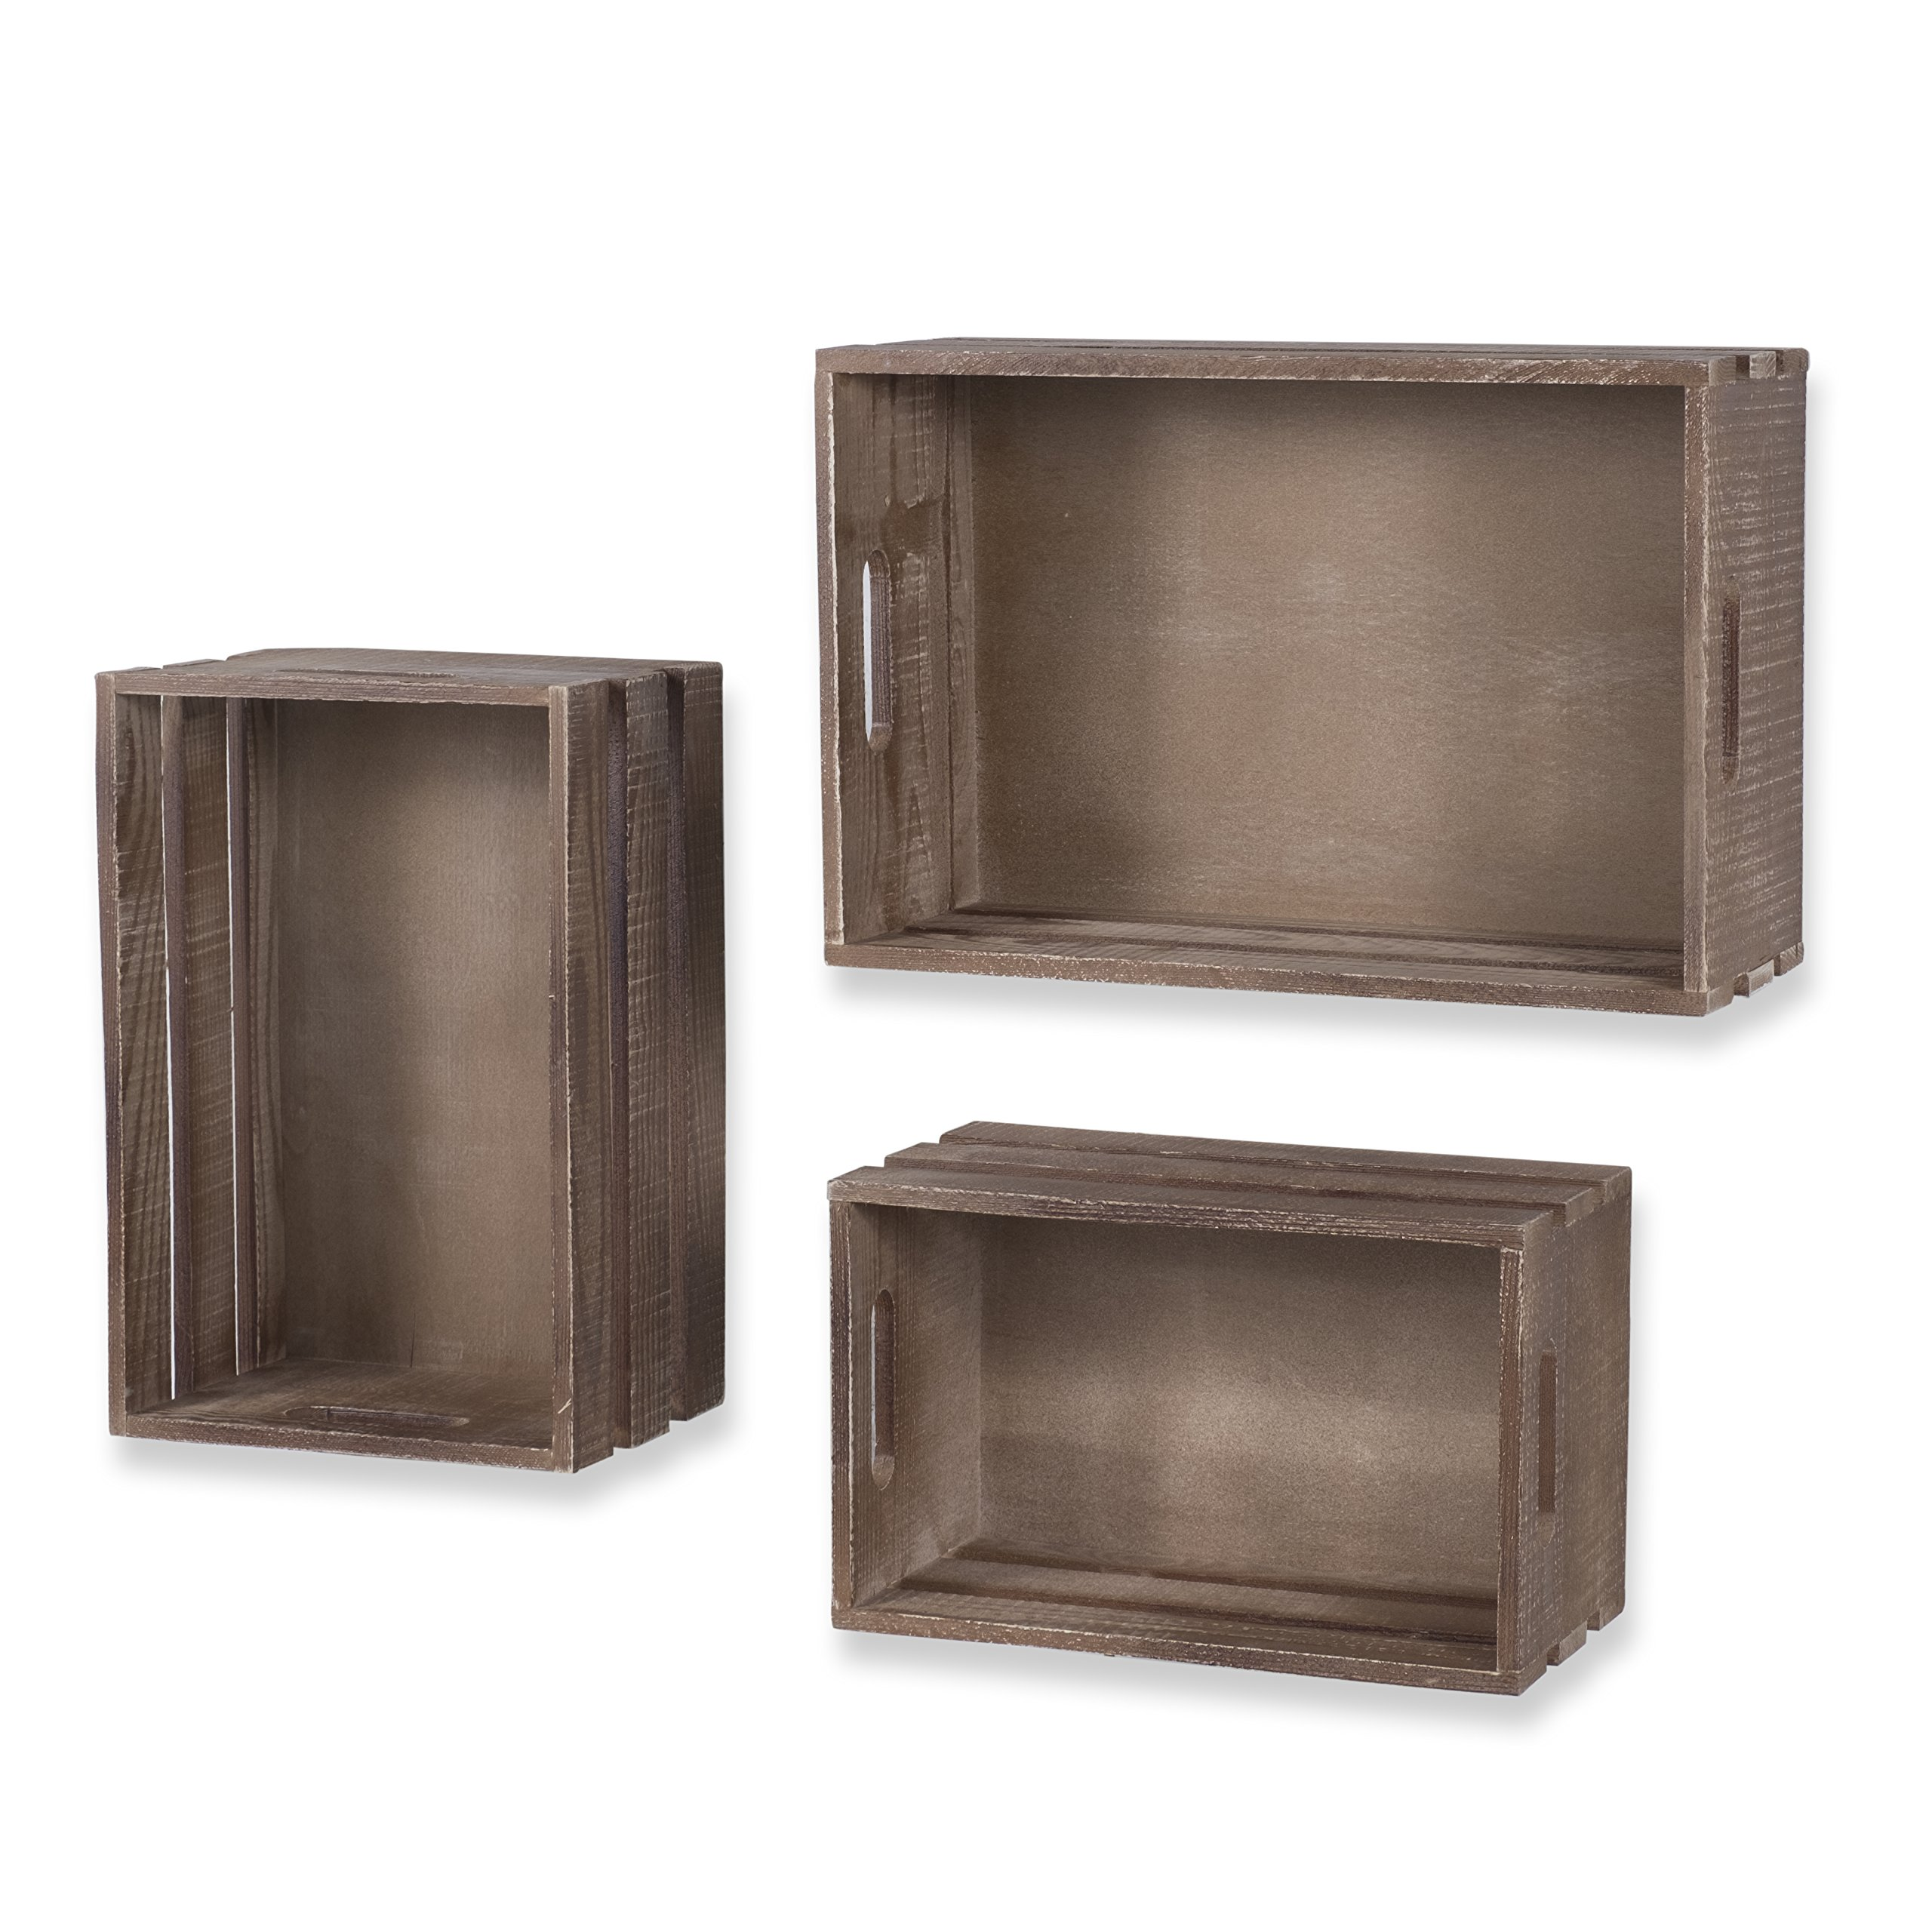 WALLNITURE Rustic Wine Rack Storage Baskets Wall Mount Wooden Crates Walnut Set of 9 by Wallniture (Image #5)